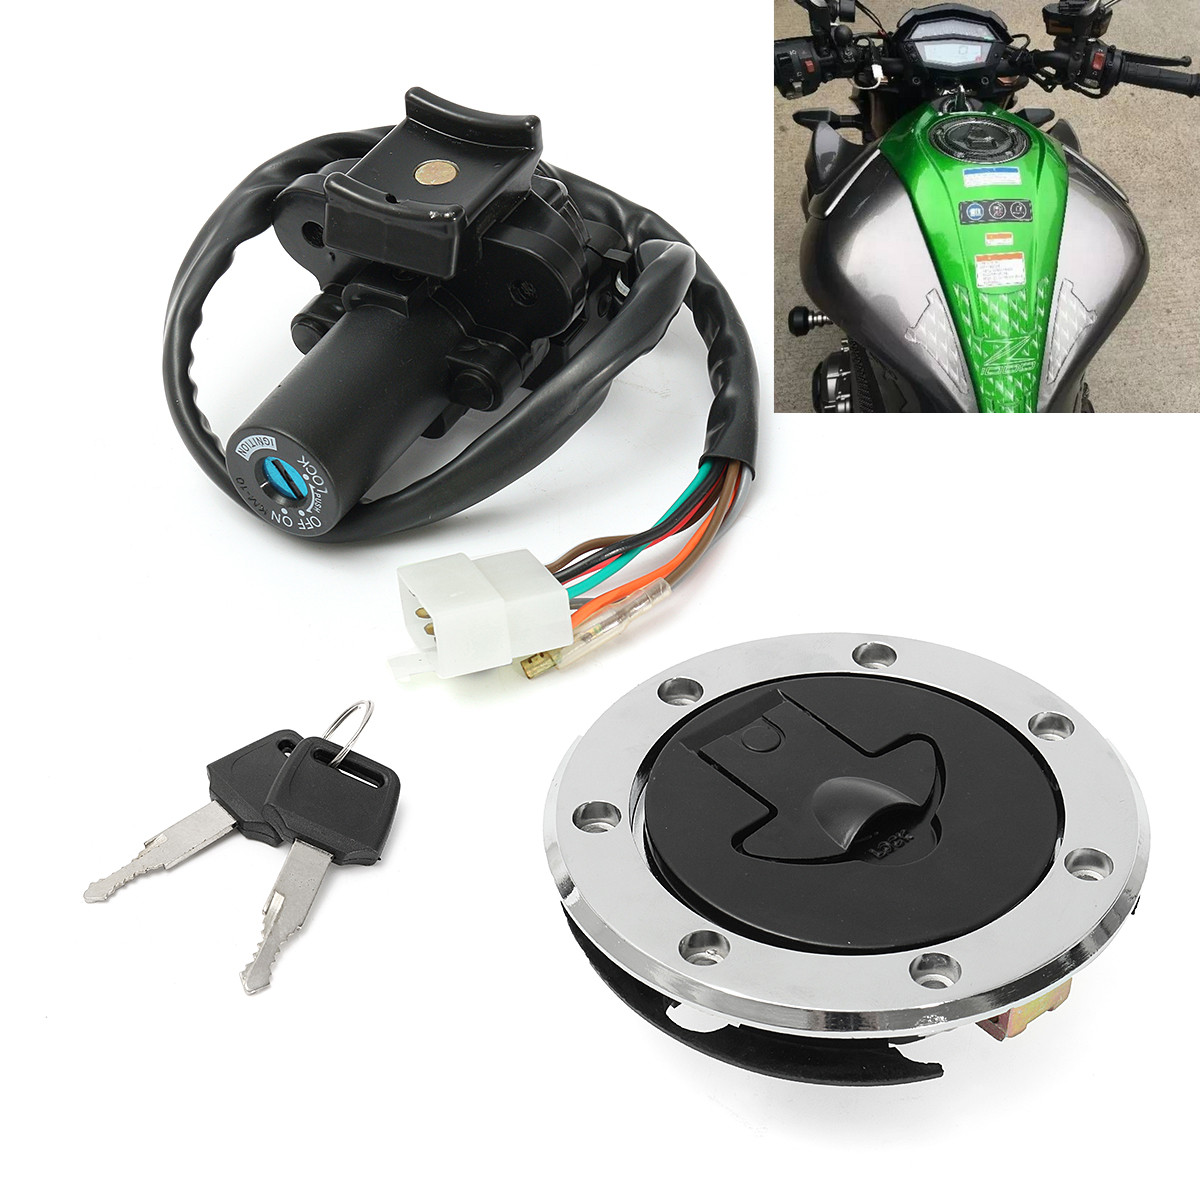 High Quality Motorcycle Ignition Switch Plane With Fuel Gas Lock Cap Cover Lock Key For Kawasaki ZX7R ZX9R ZXR750 ZX900 New